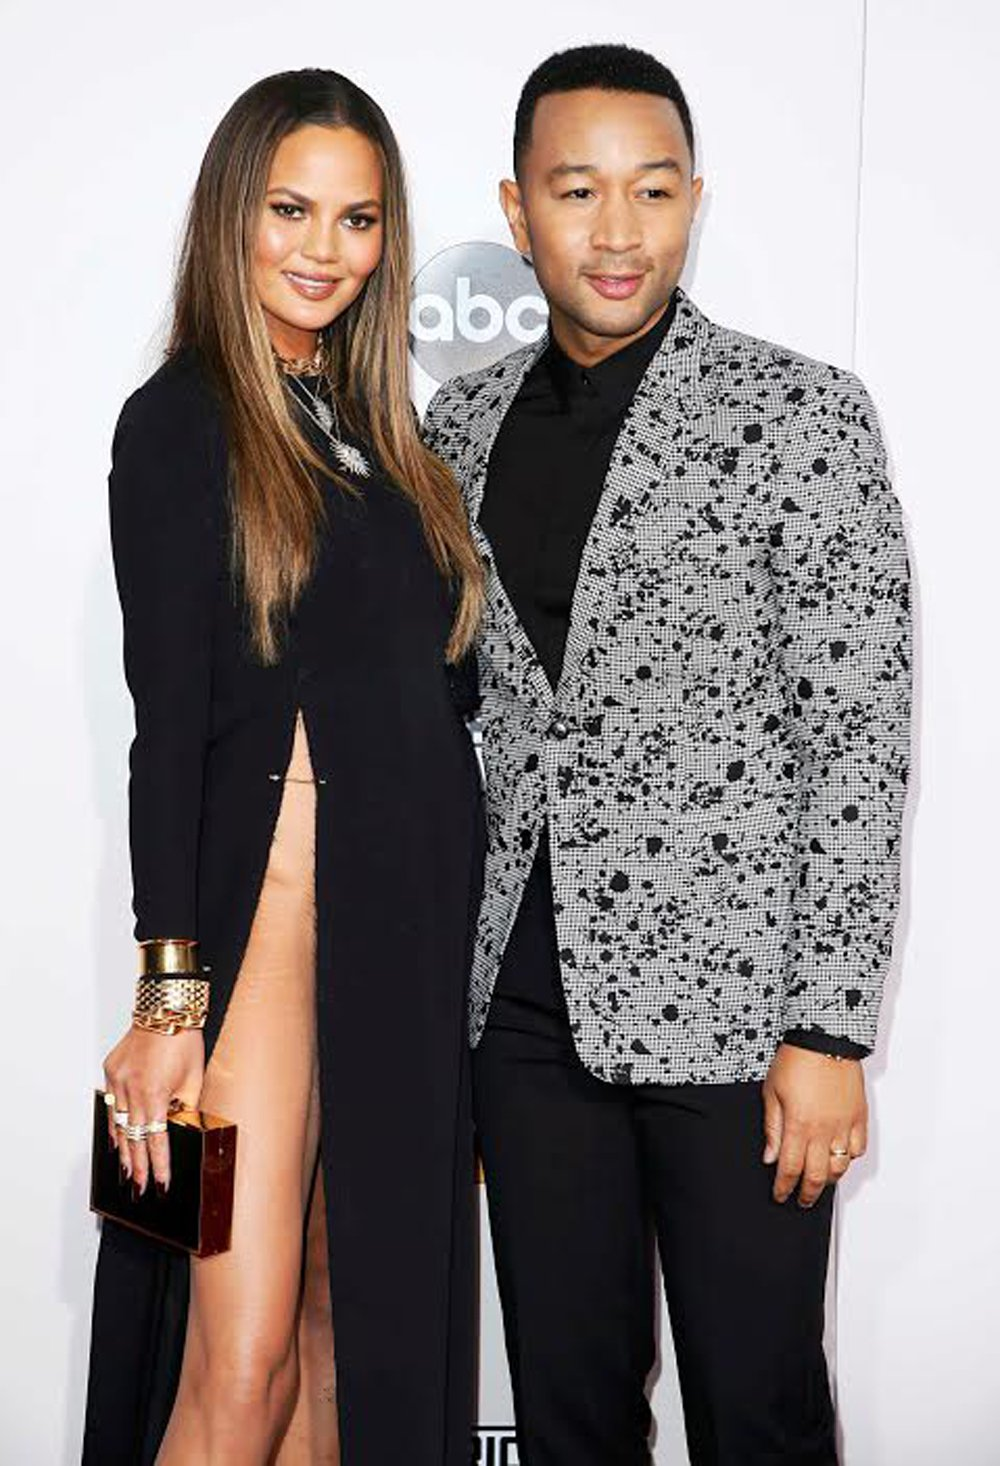 Established+Jewelry+Press,+Celebrity+Chrissy+Teigen-2.jpeg